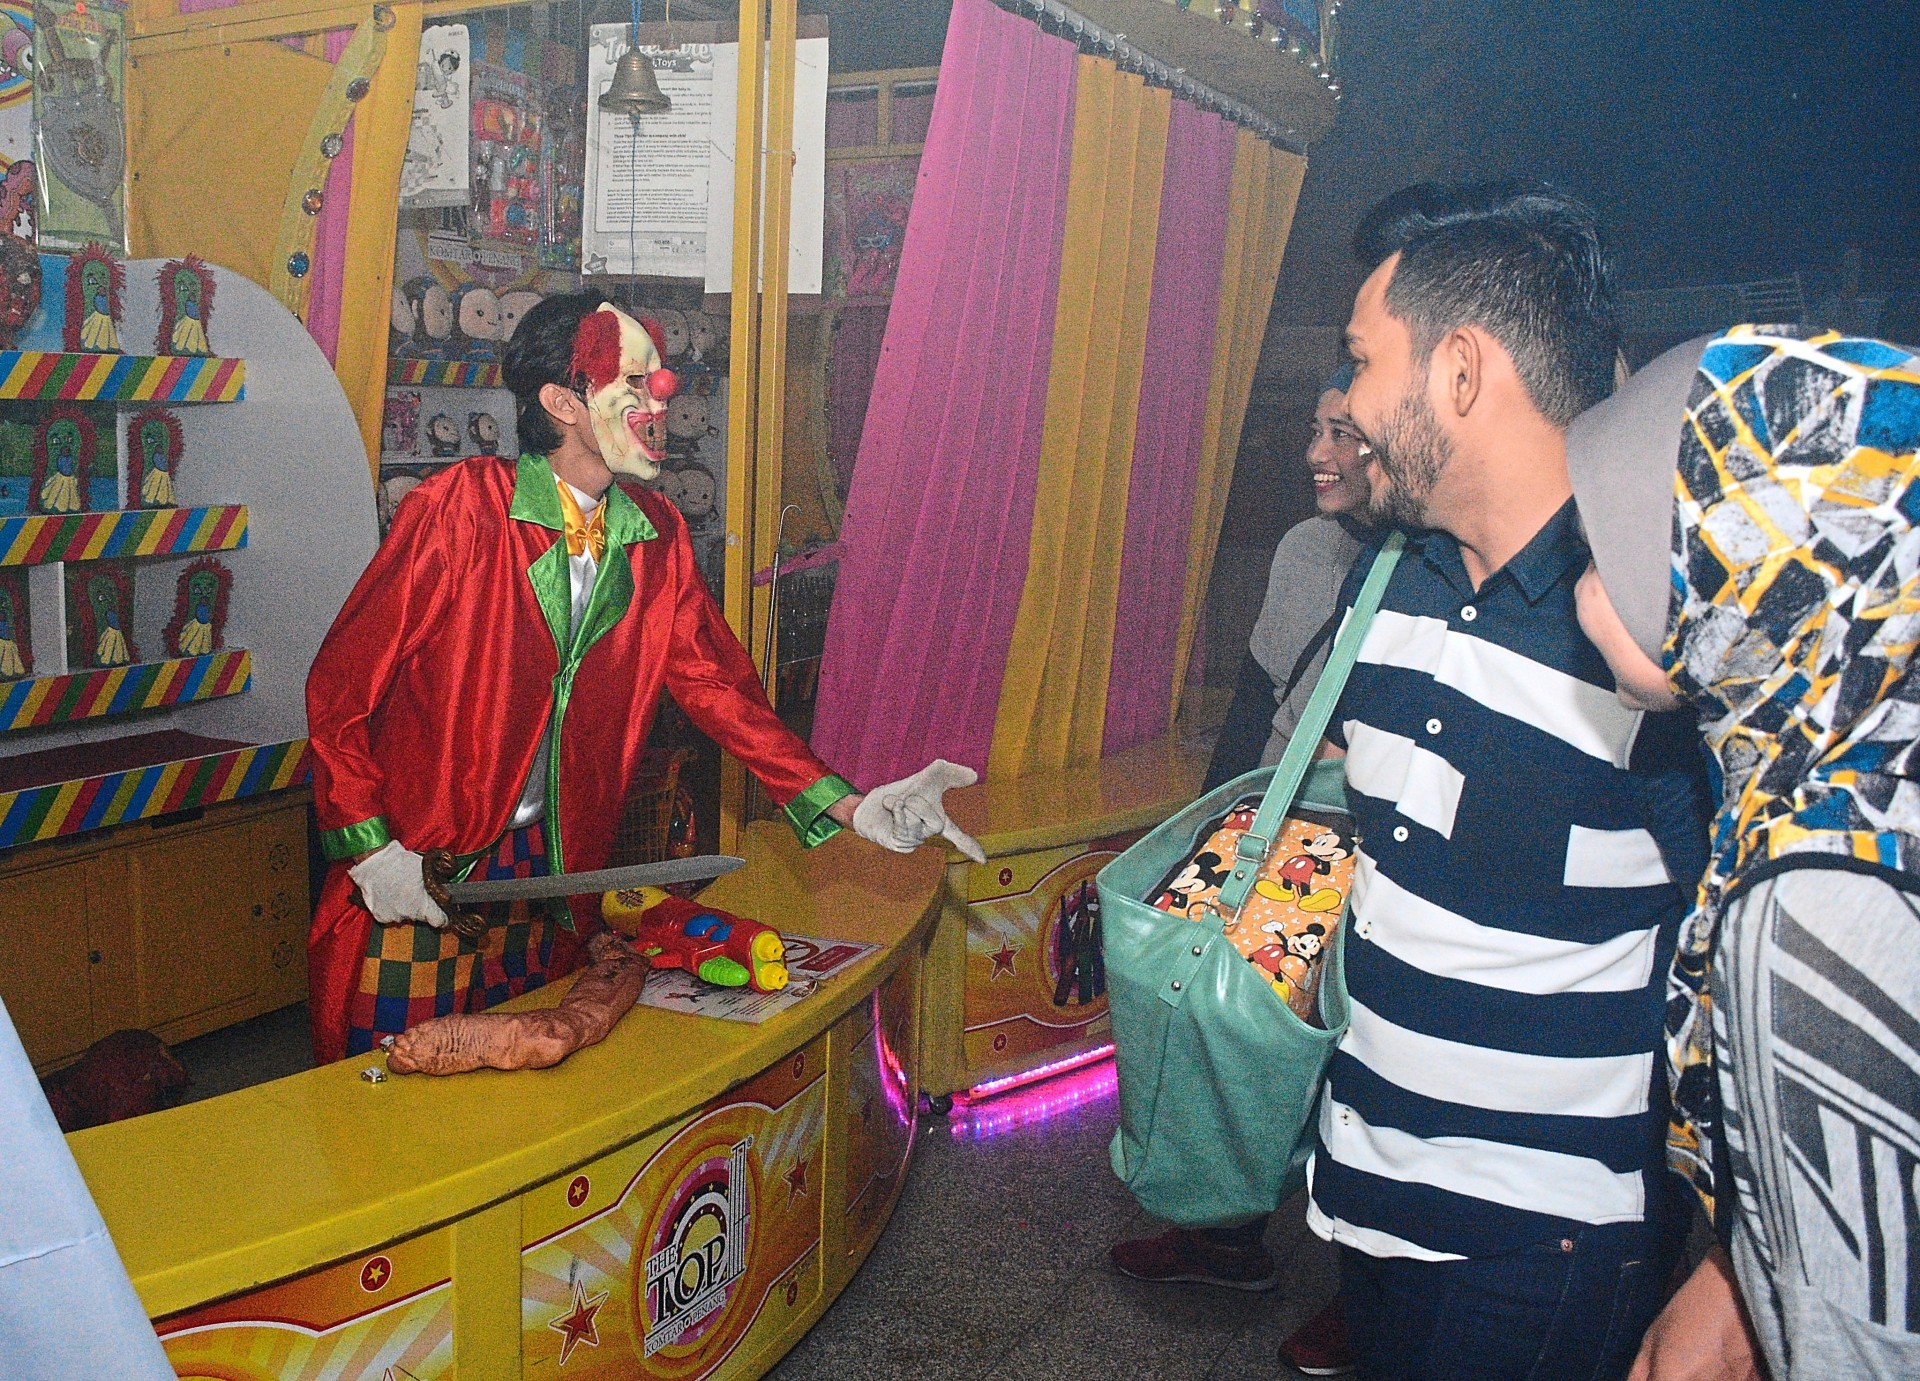 Visitors checking out the killer clown booths located inside the 'haunted house'.